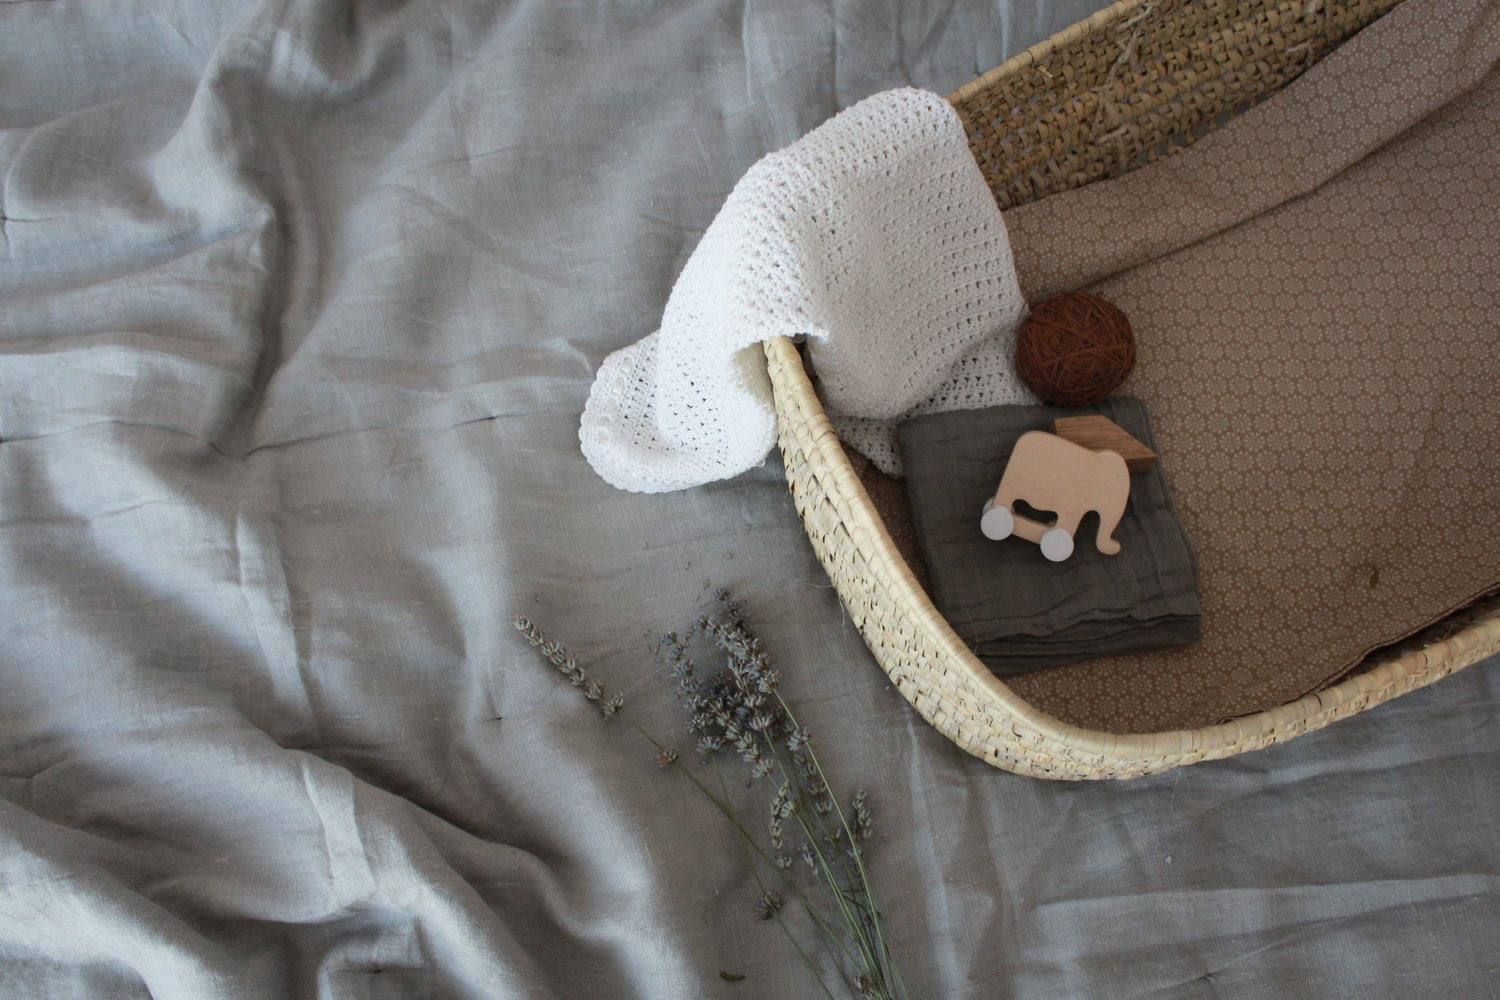 Pinch Toys Mini Elephant wooden toy in a baby basket with grey and white bedding